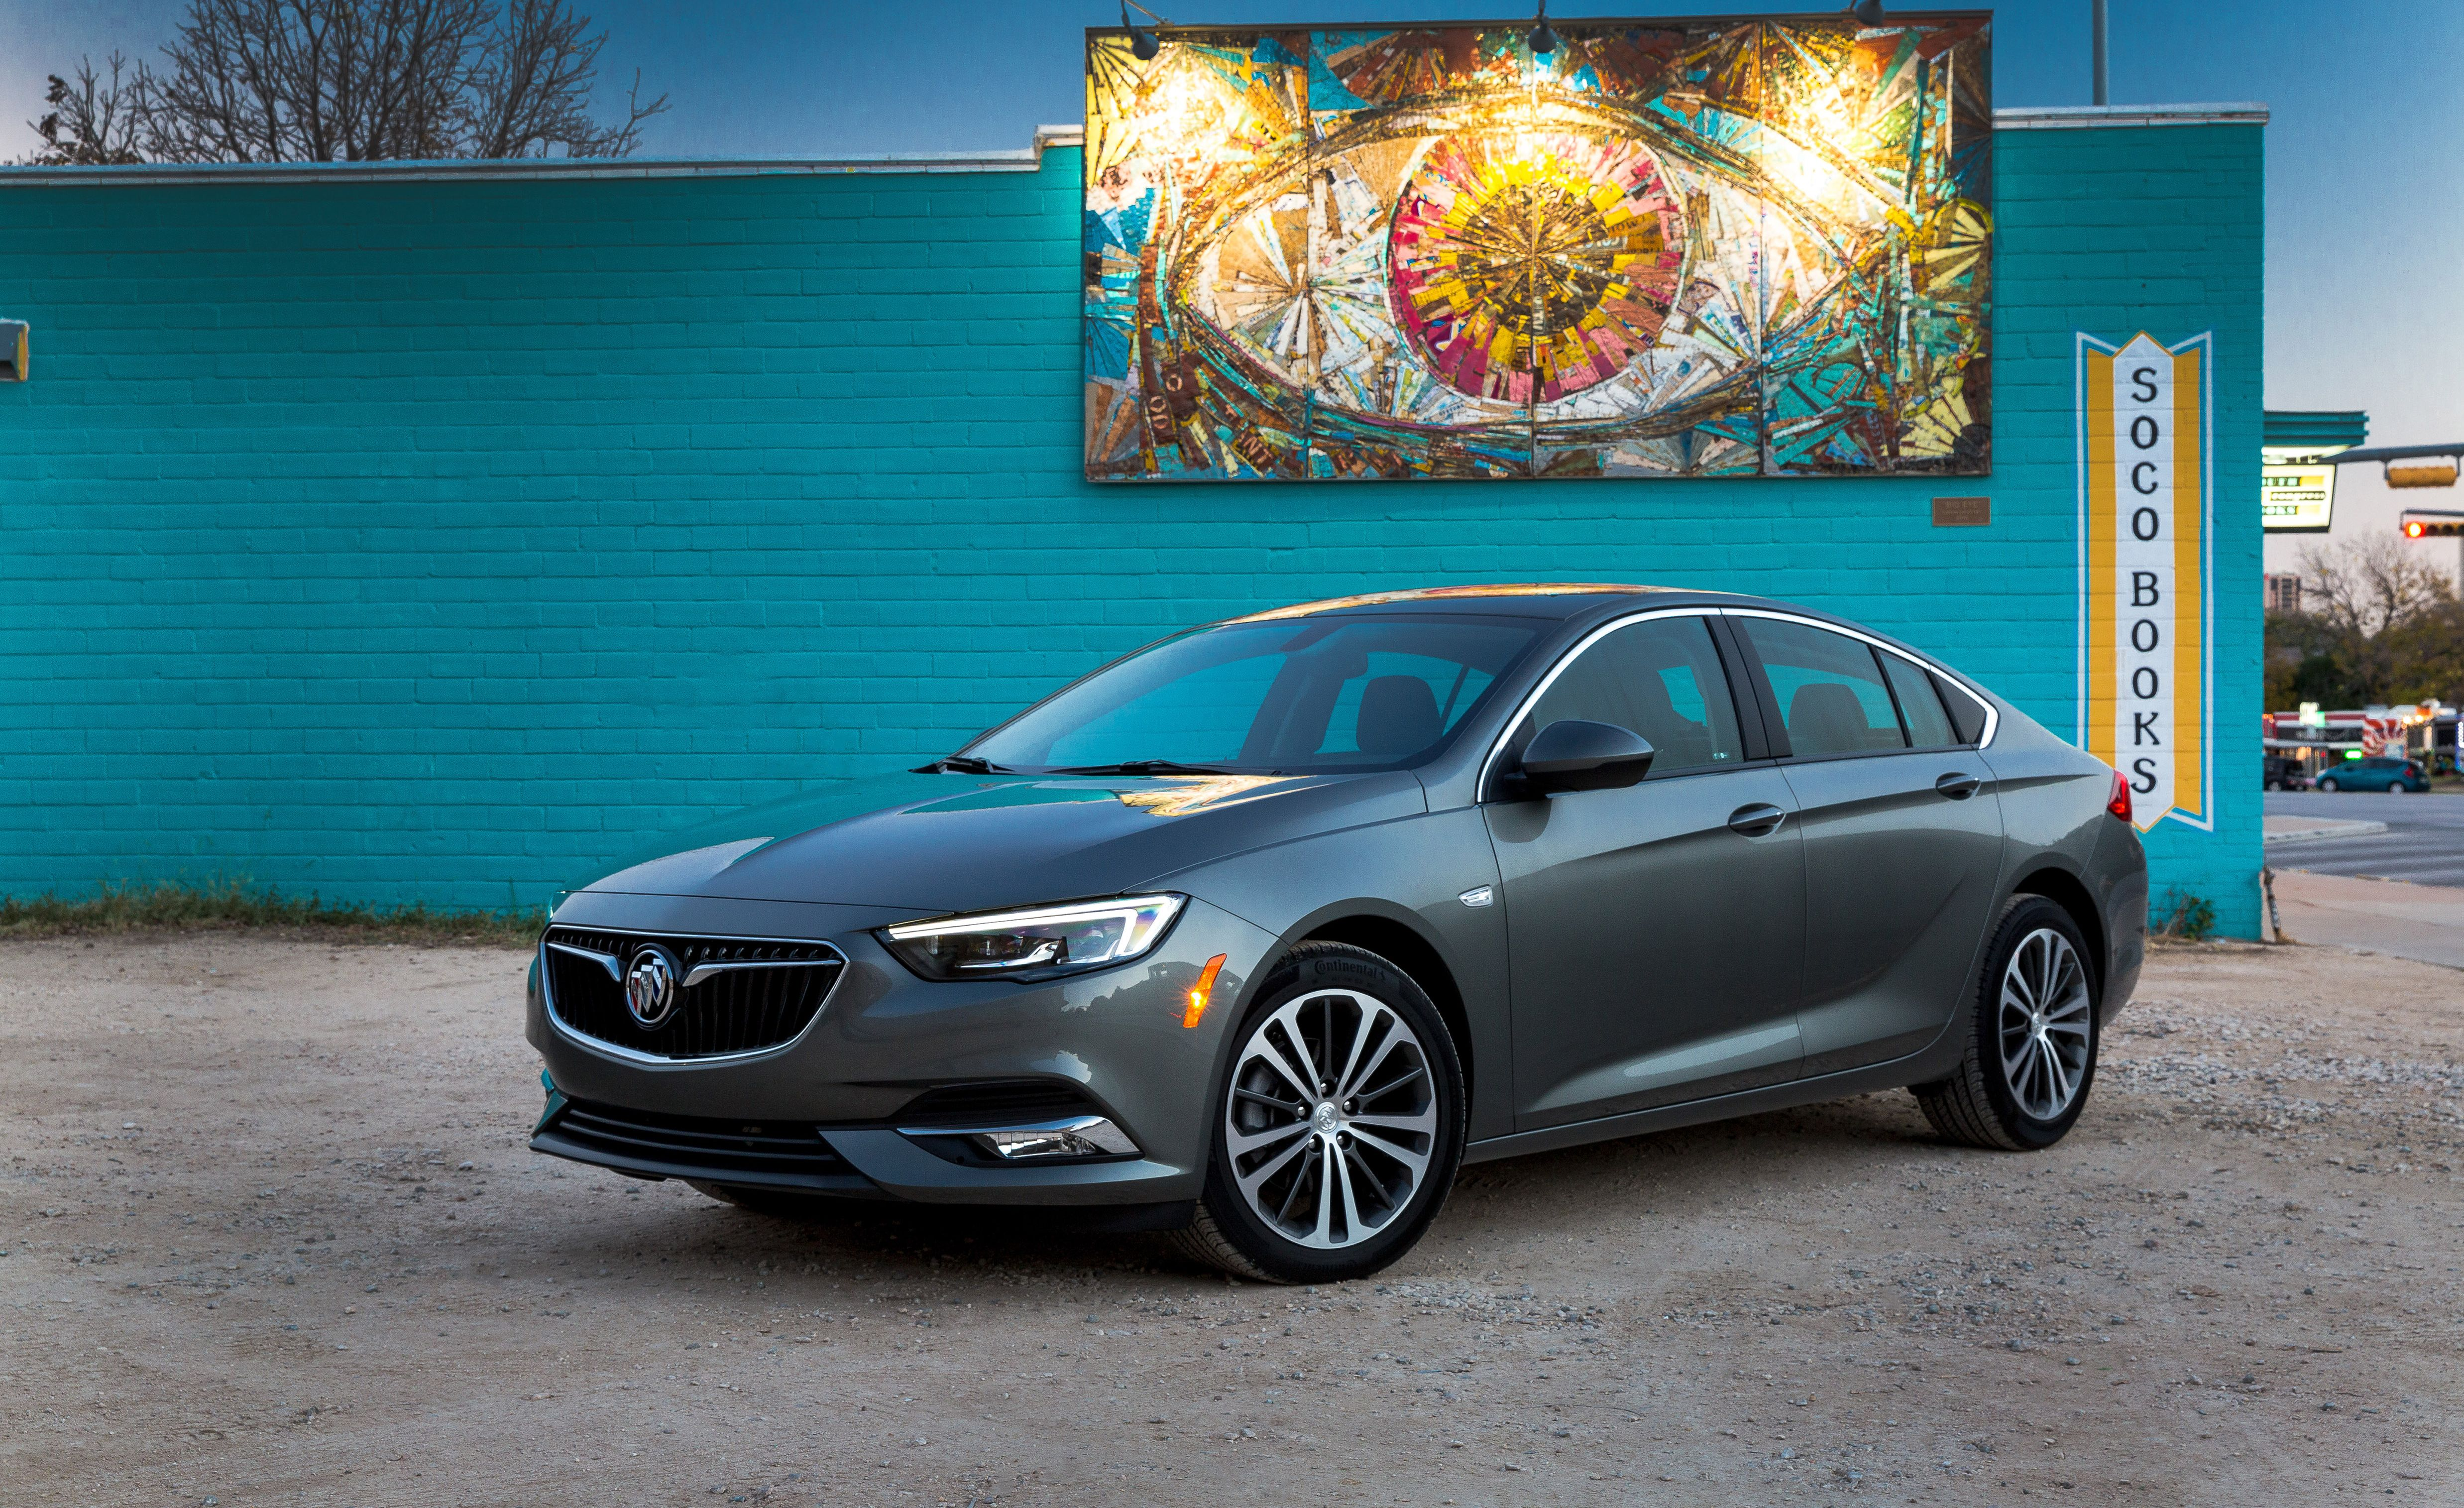 20. Buick Regal Sportback We've placed the regular Buick Regal Sportback above its more powerful GS sibling in our rankings because it is just as attractive and roomy (and nearly as quick!) and costs less money. The Regals both suffer from interiors that feel built to a price.